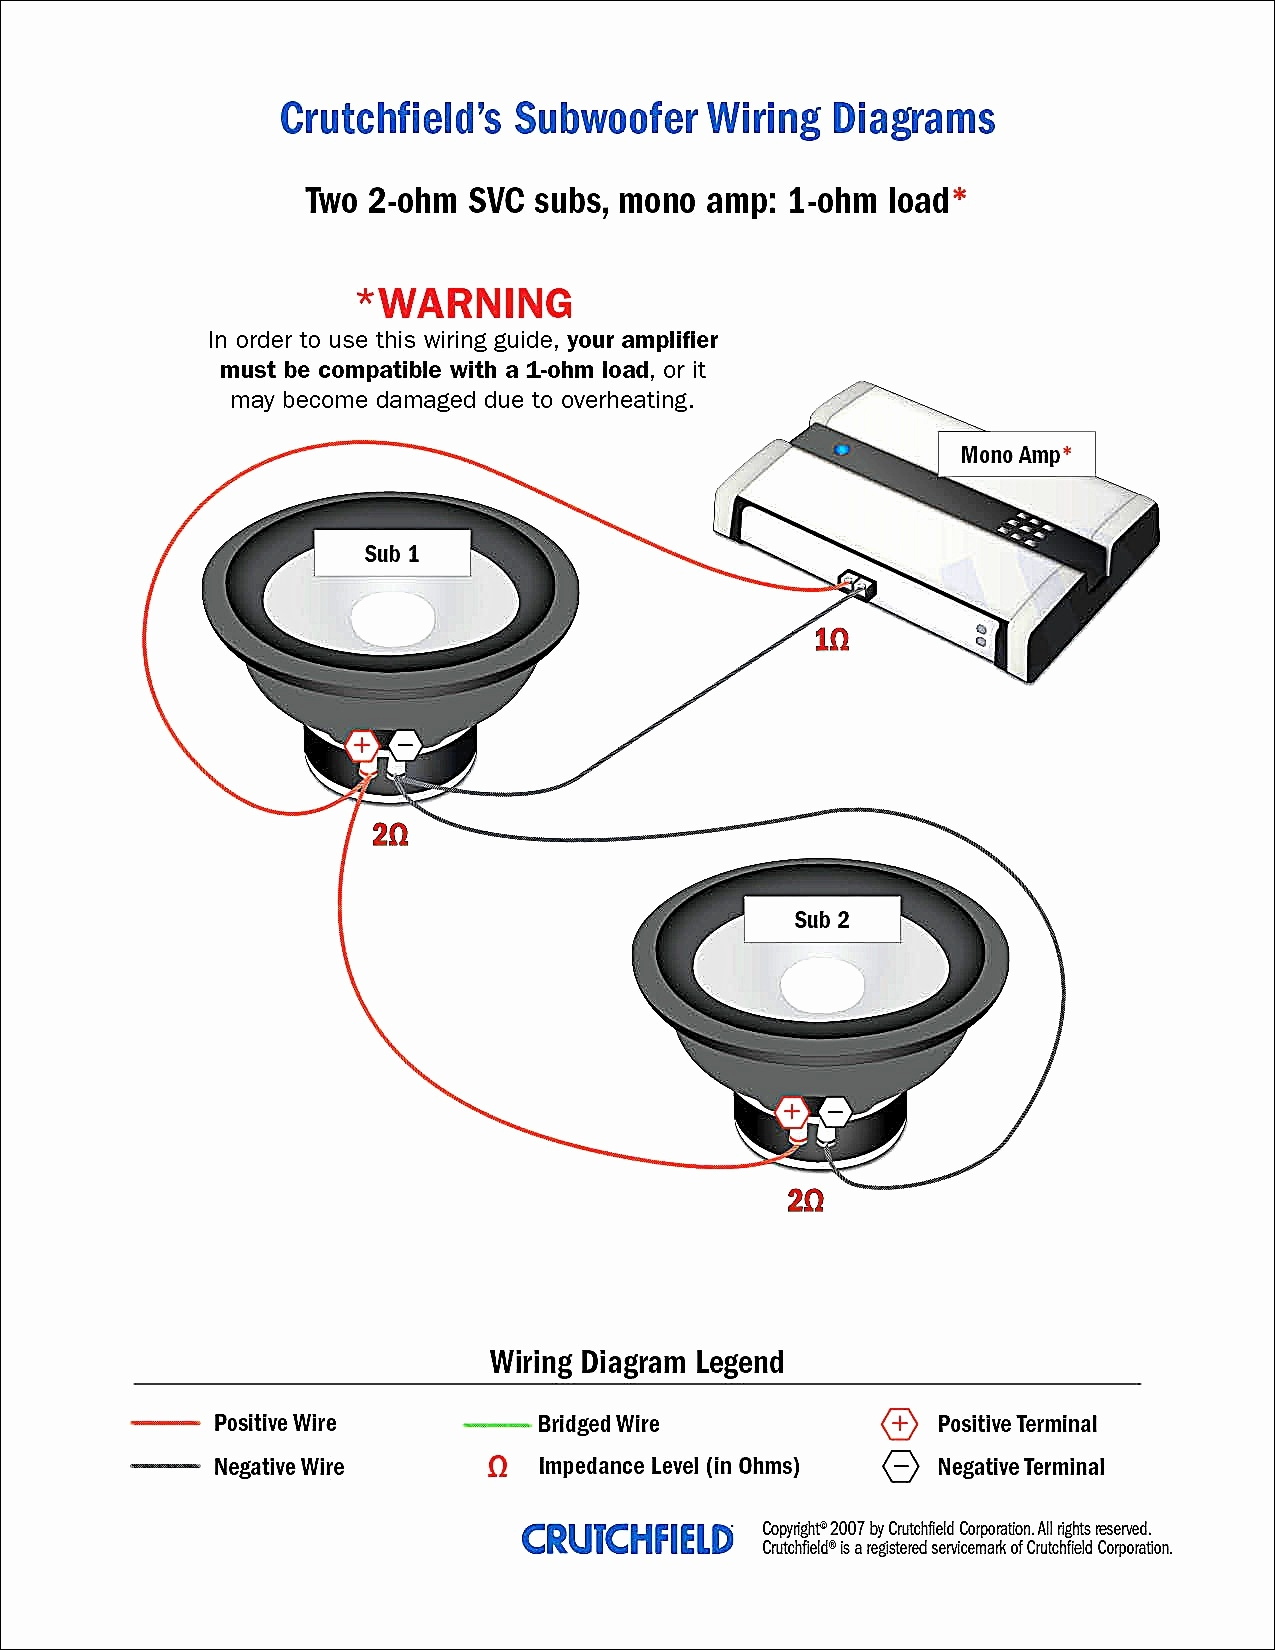 Kicker 12 Cvr Subwoofers Wiring Diagram | Best Wiring Library - Kicker Cvr 12 Wiring Diagram